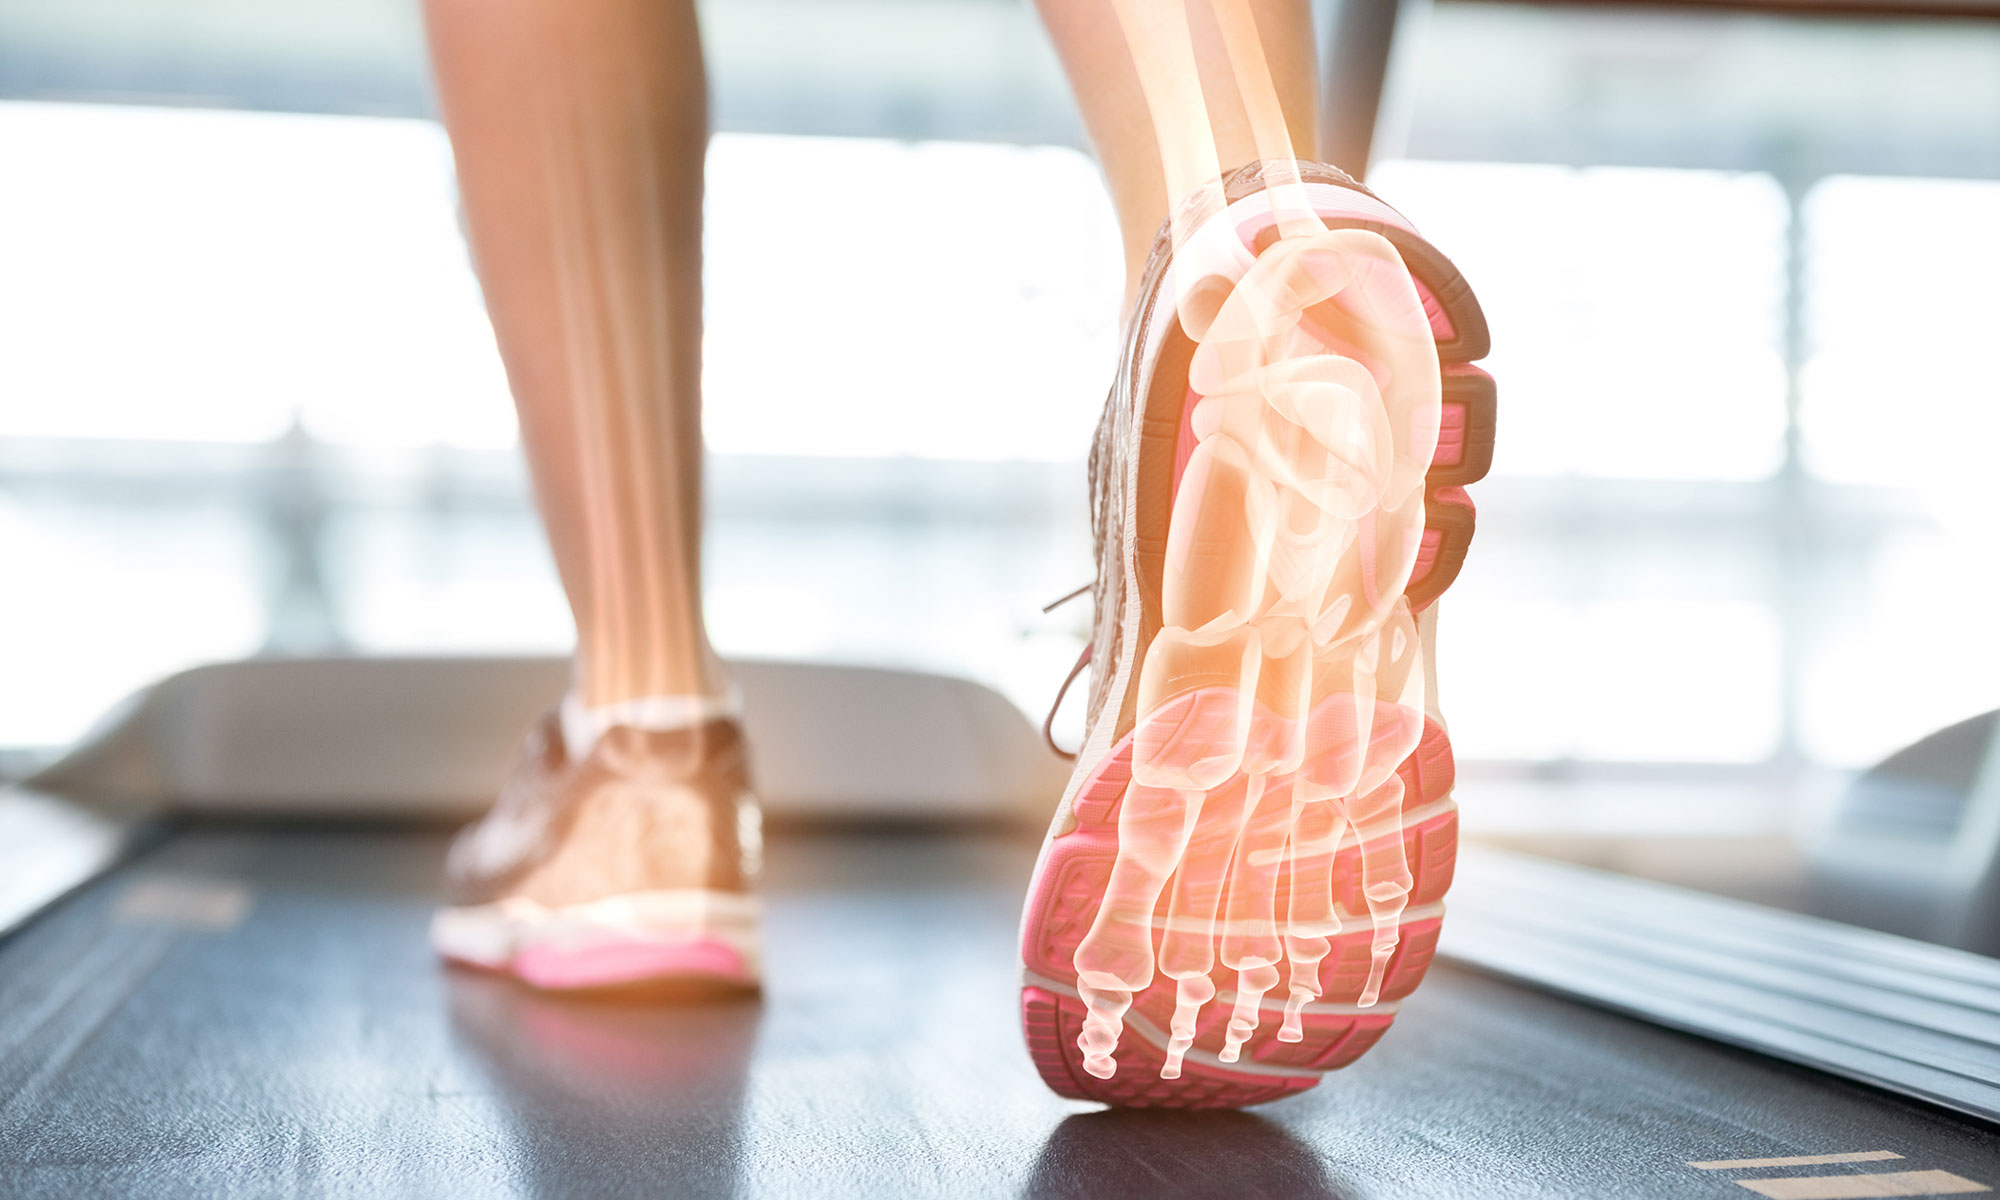 SPORTS MEDICINE AND MUSCULOSKELETAL TREATMENTS